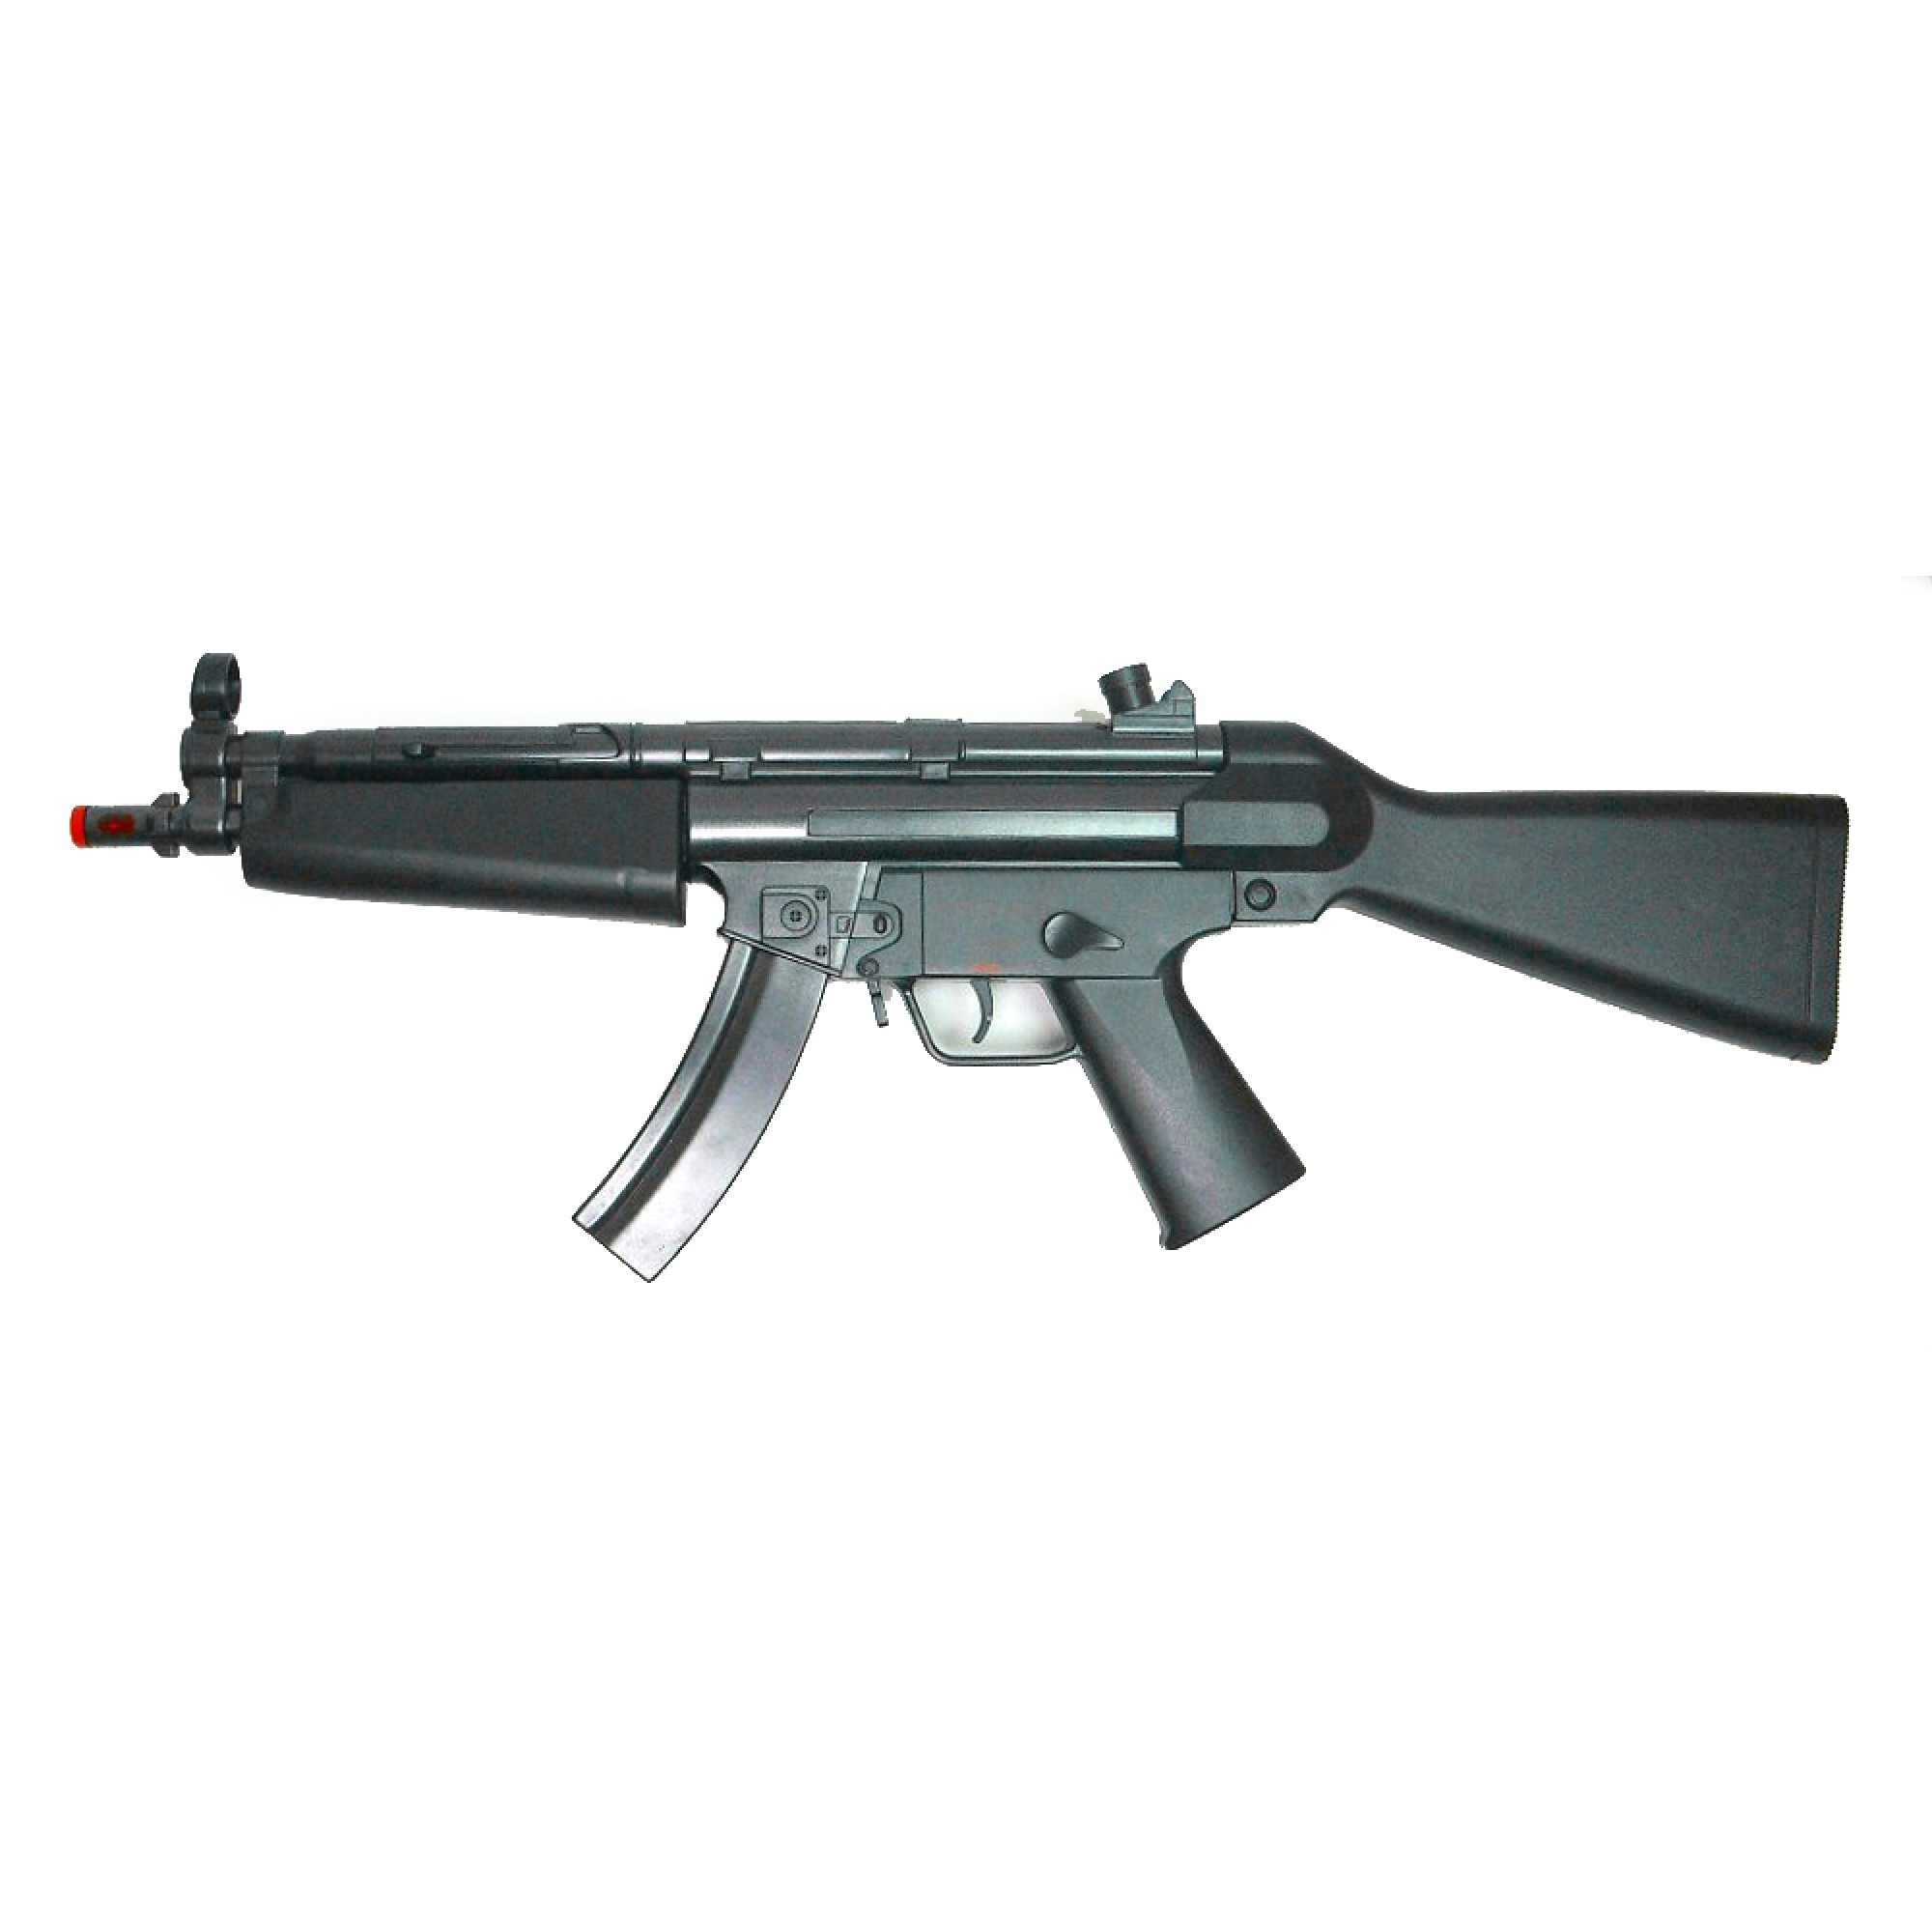 MP5 A4 W/Light, Sound & Vibration